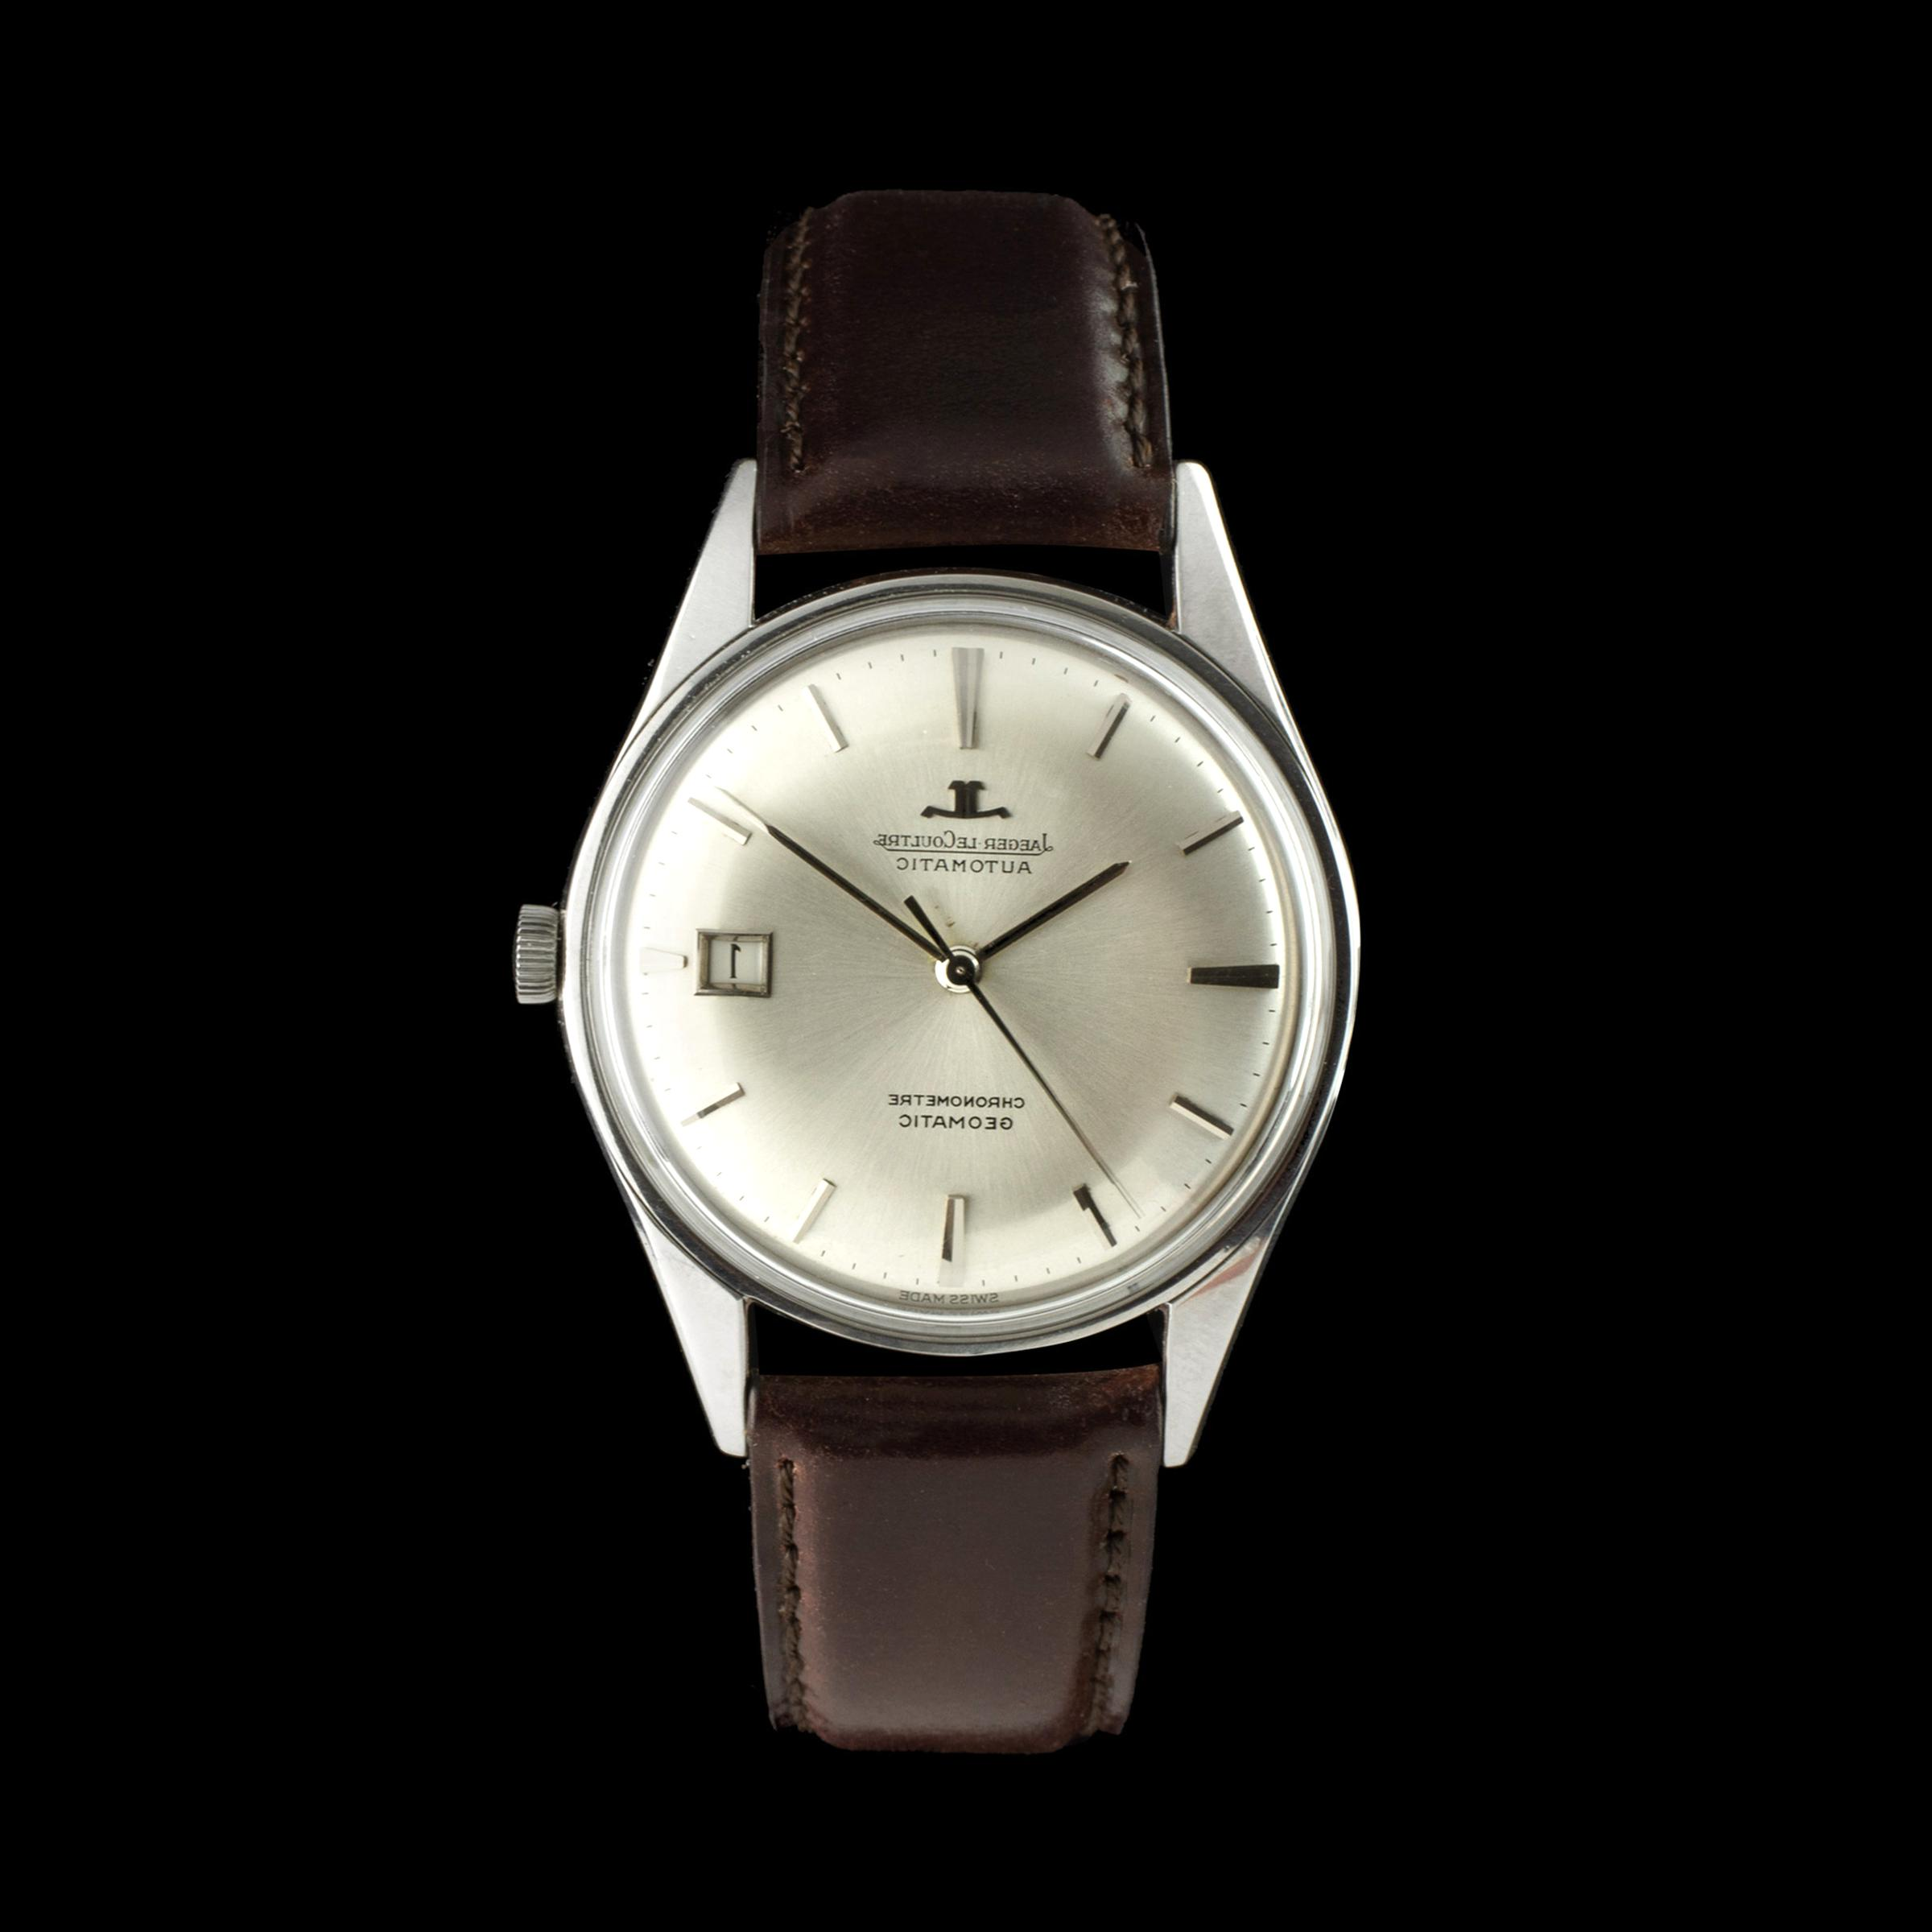 jaeger lecoultre geomatic d'occasion